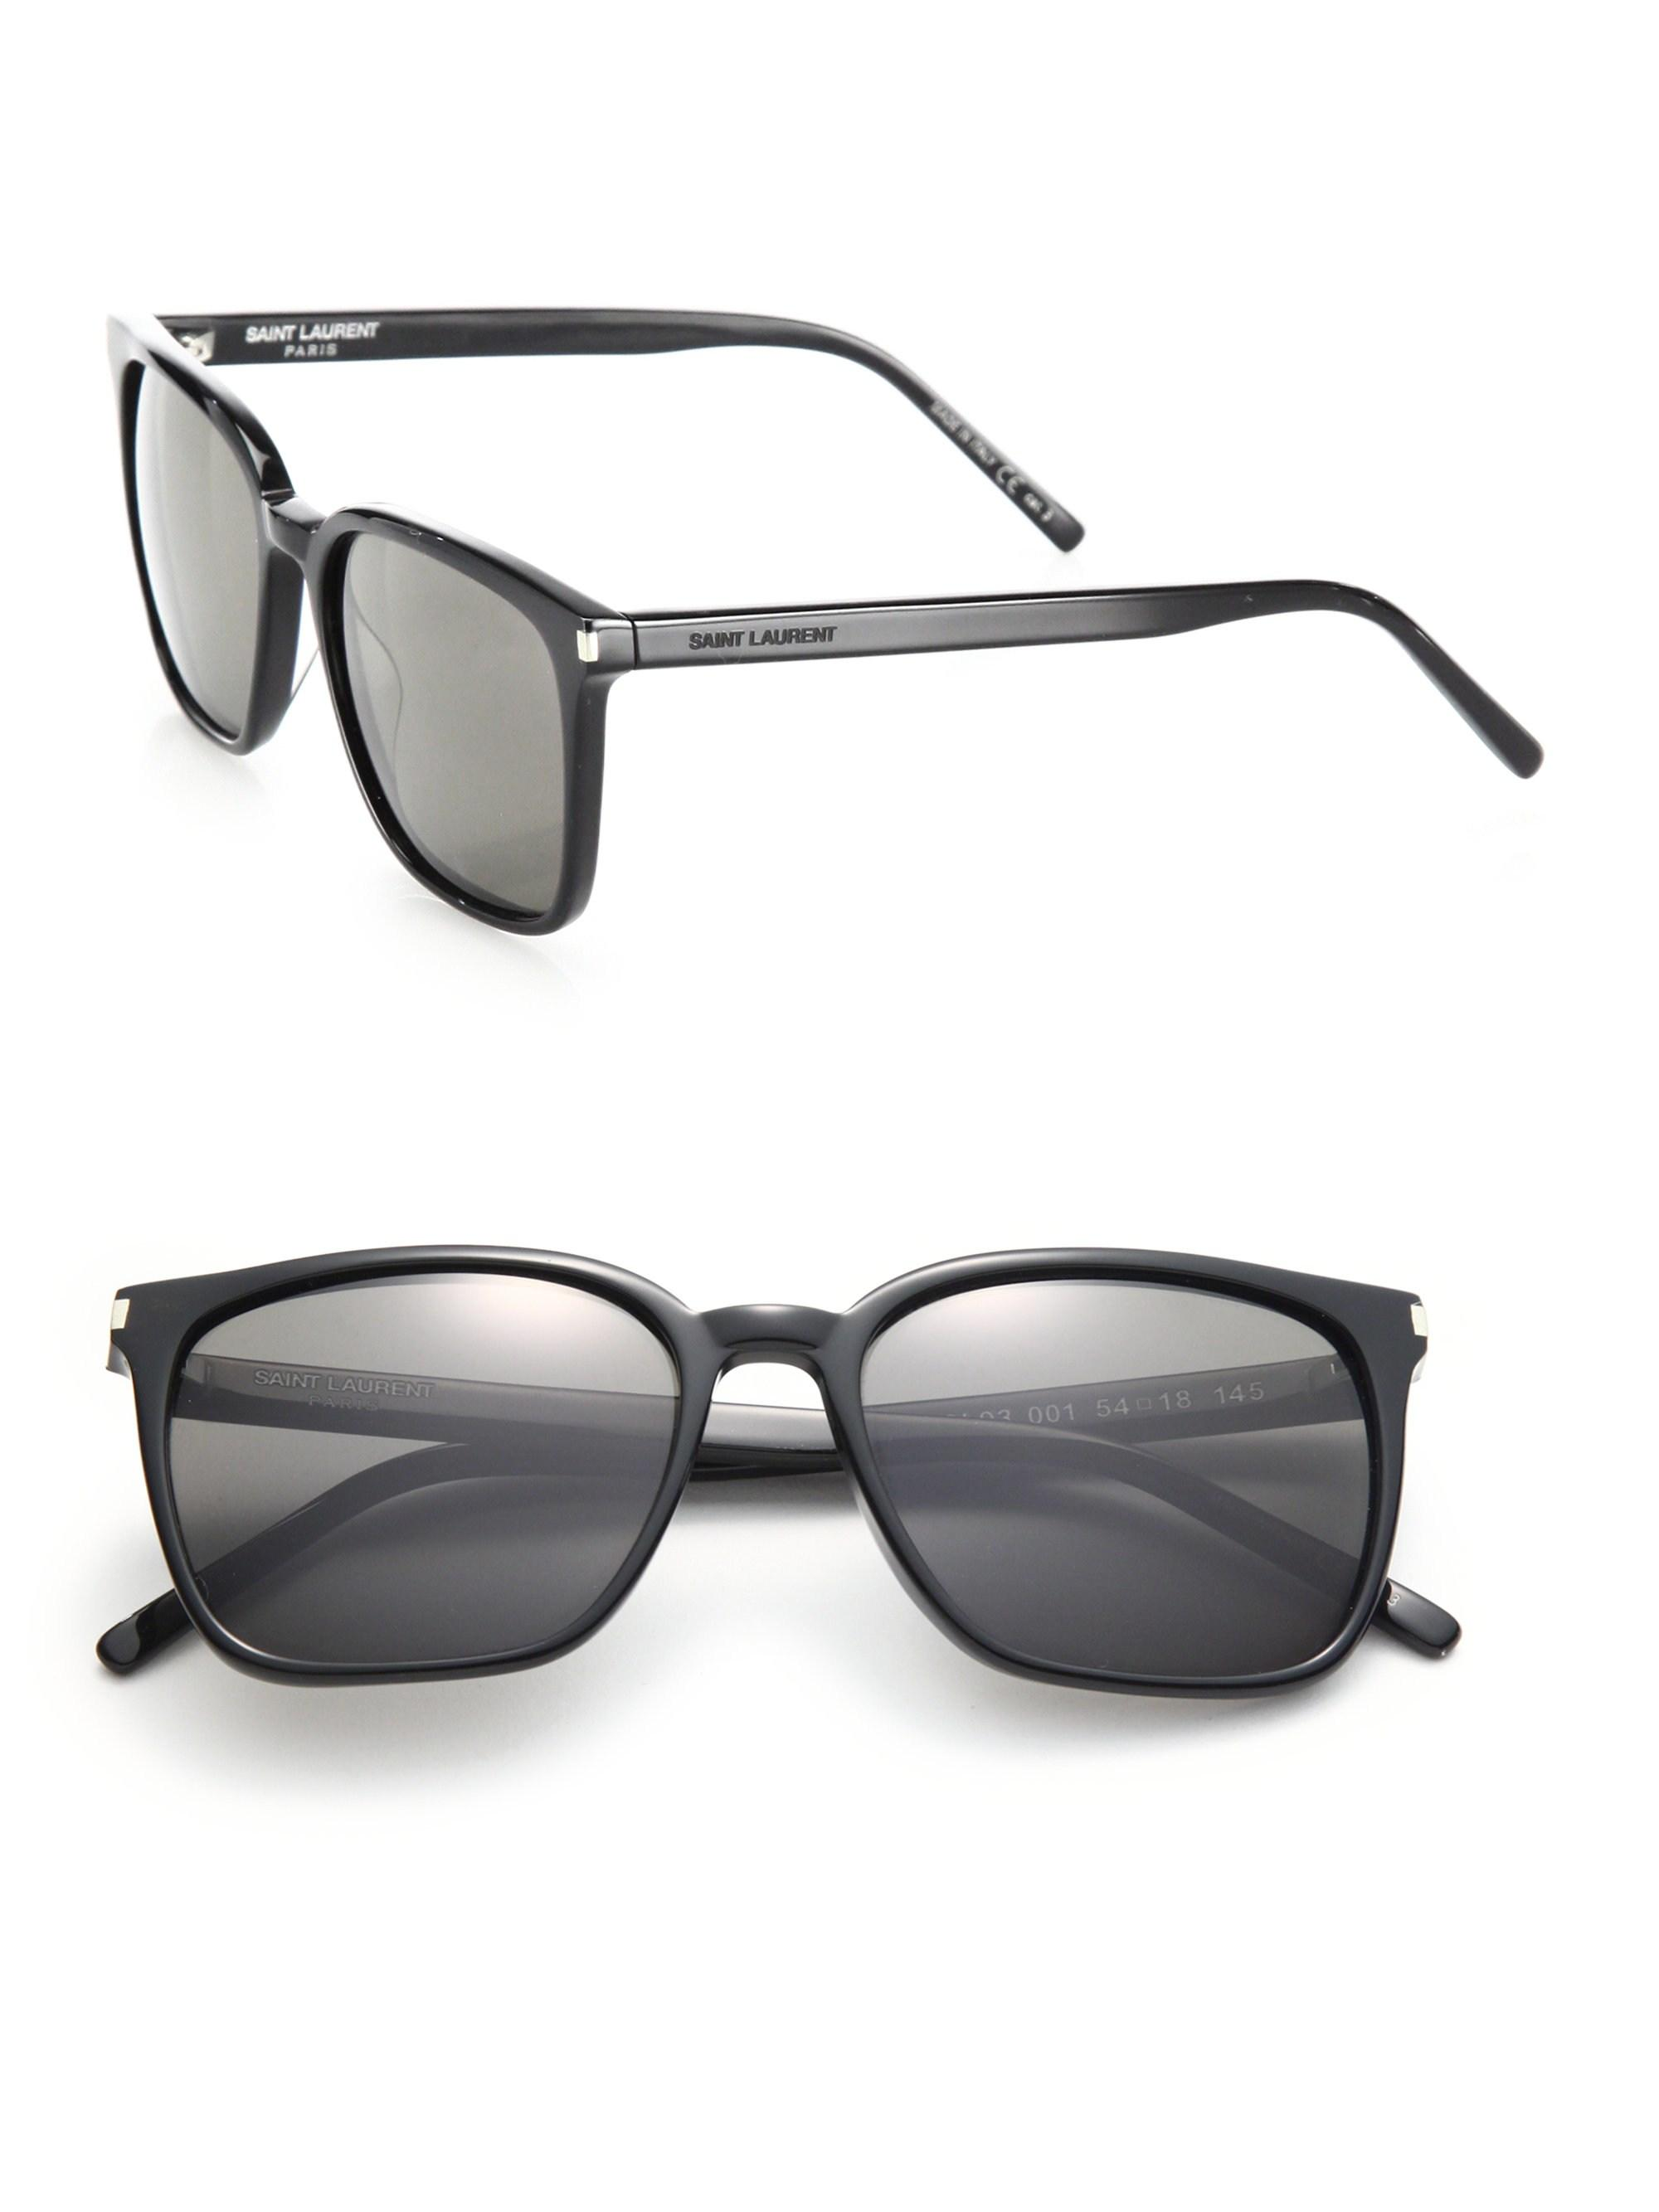 0d891b0c05b6 Saint Laurent Women's Sl 93 Thin Square Sunglasses - Black Smoke in ...